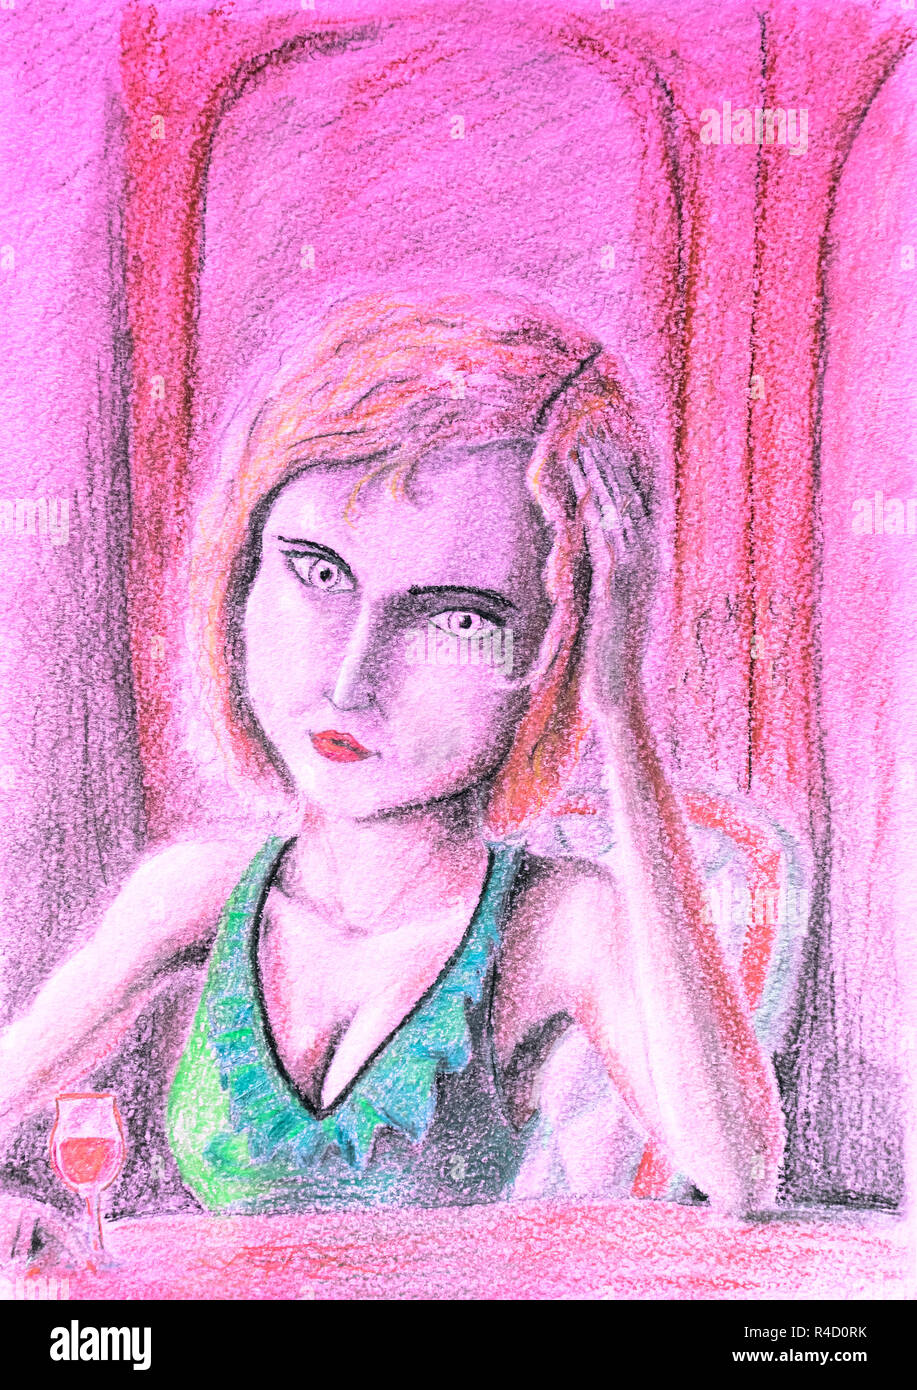 Sad woman at the table holding a glass of wine drinking from depression drawing with pencils